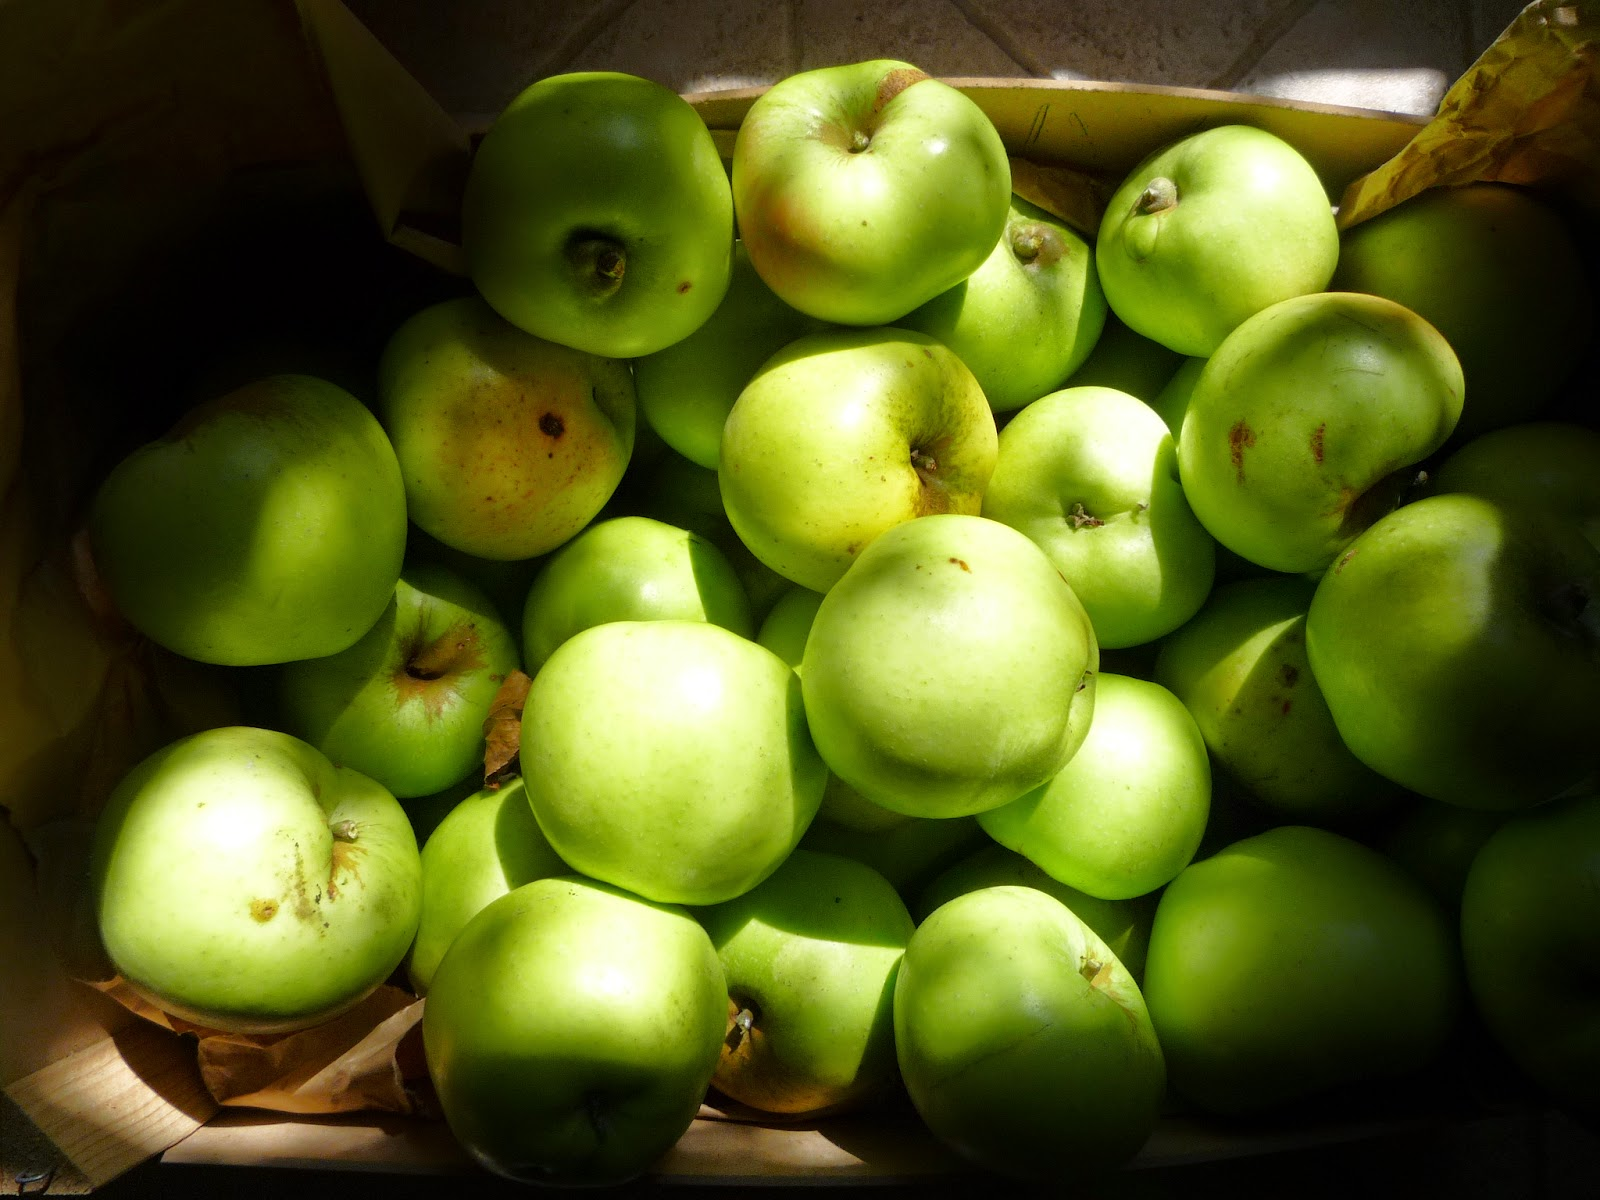 Organic Catshead apples